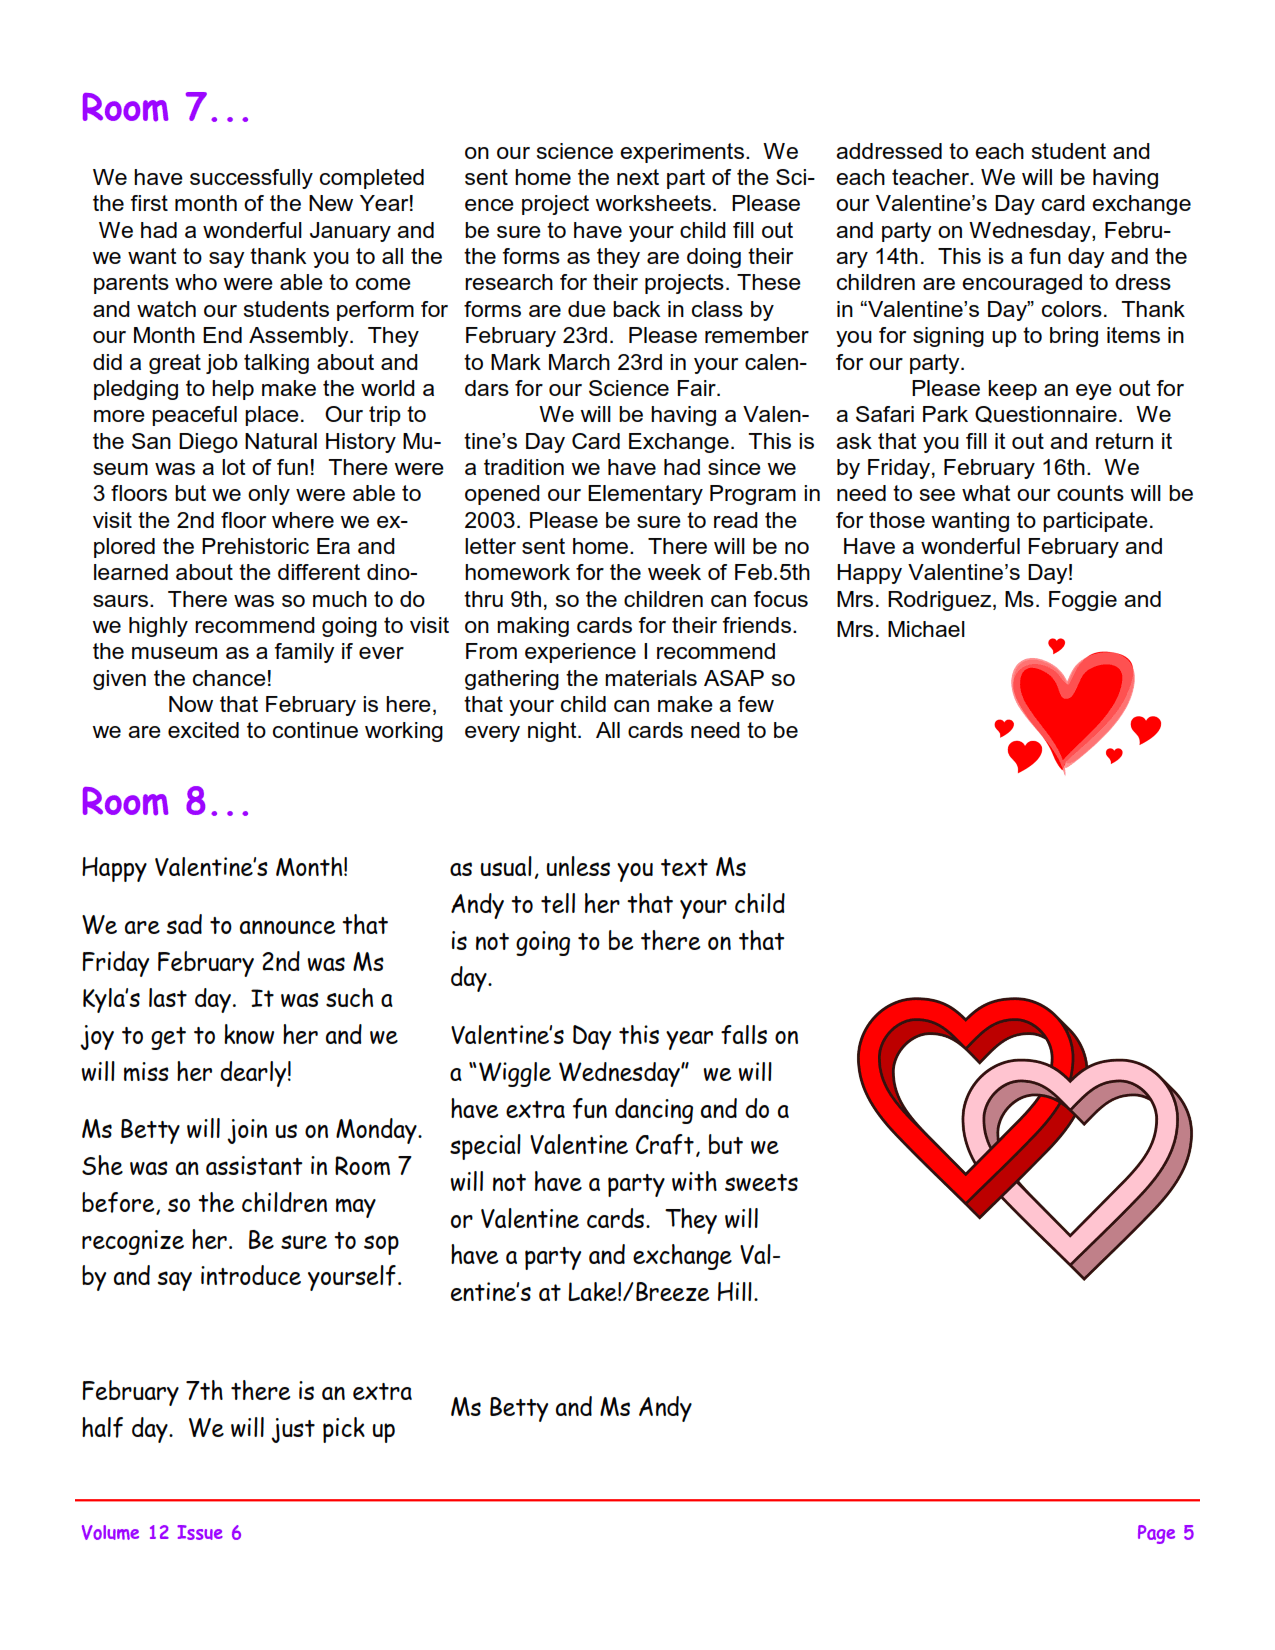 MSO February 2018 Newsletter. Room 7 and Room 8